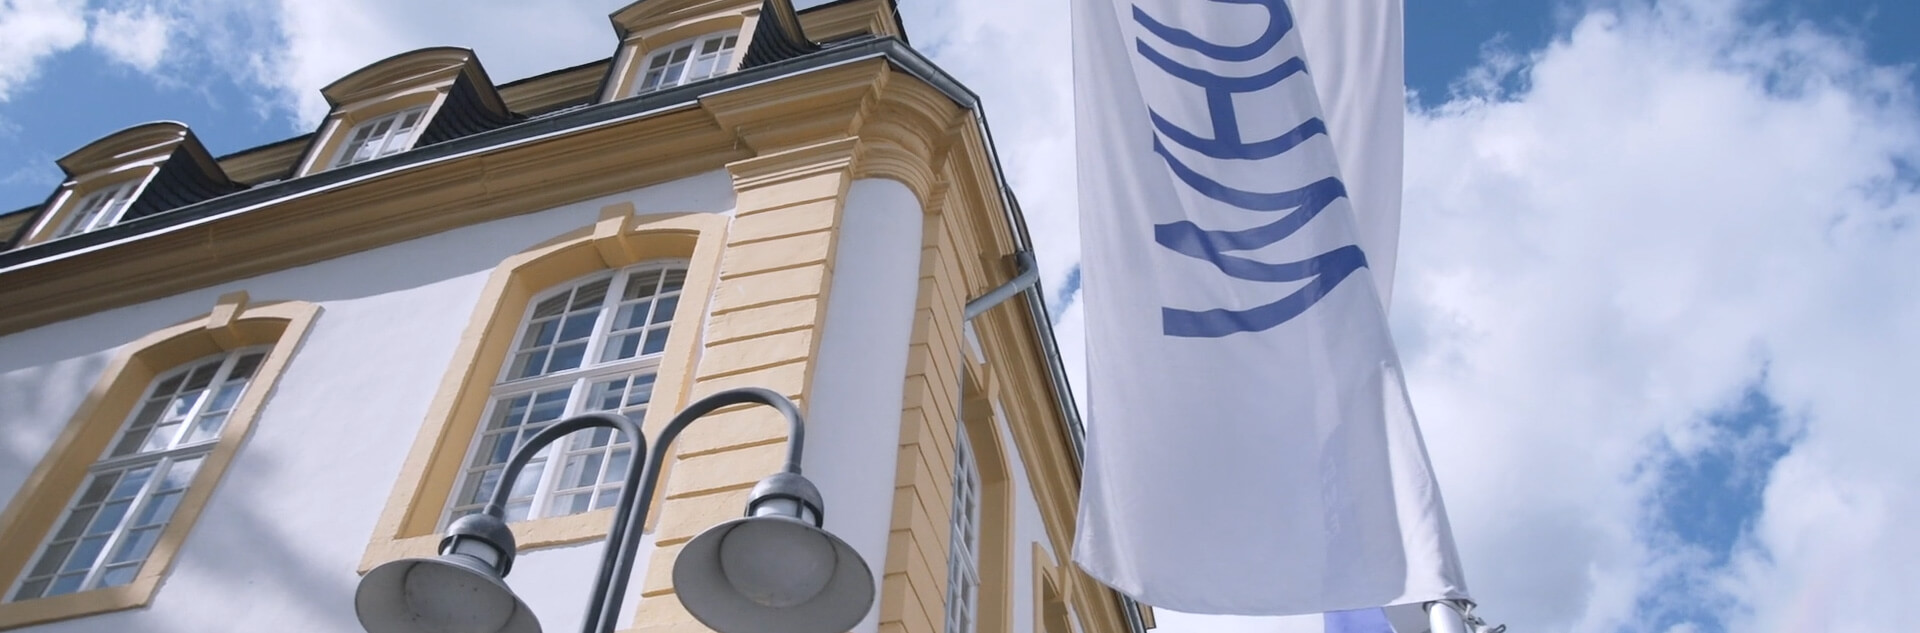 WHU Campus Düsseldorf – Top ranking study programs in an ... on alexandroupolis on map, darmstadt on map, porto on map, coblenz on map, koln on map, kutna hora on map, pristina on map, arnhem on map, wurzburg on map, mainz on map, eindhoven on map, cluj napoca on map, washington on map, rostock on map, fez on map, lodz on map, hildesheim on map, wiesbaden on map, bergen on map, san carlos de bariloche on map,